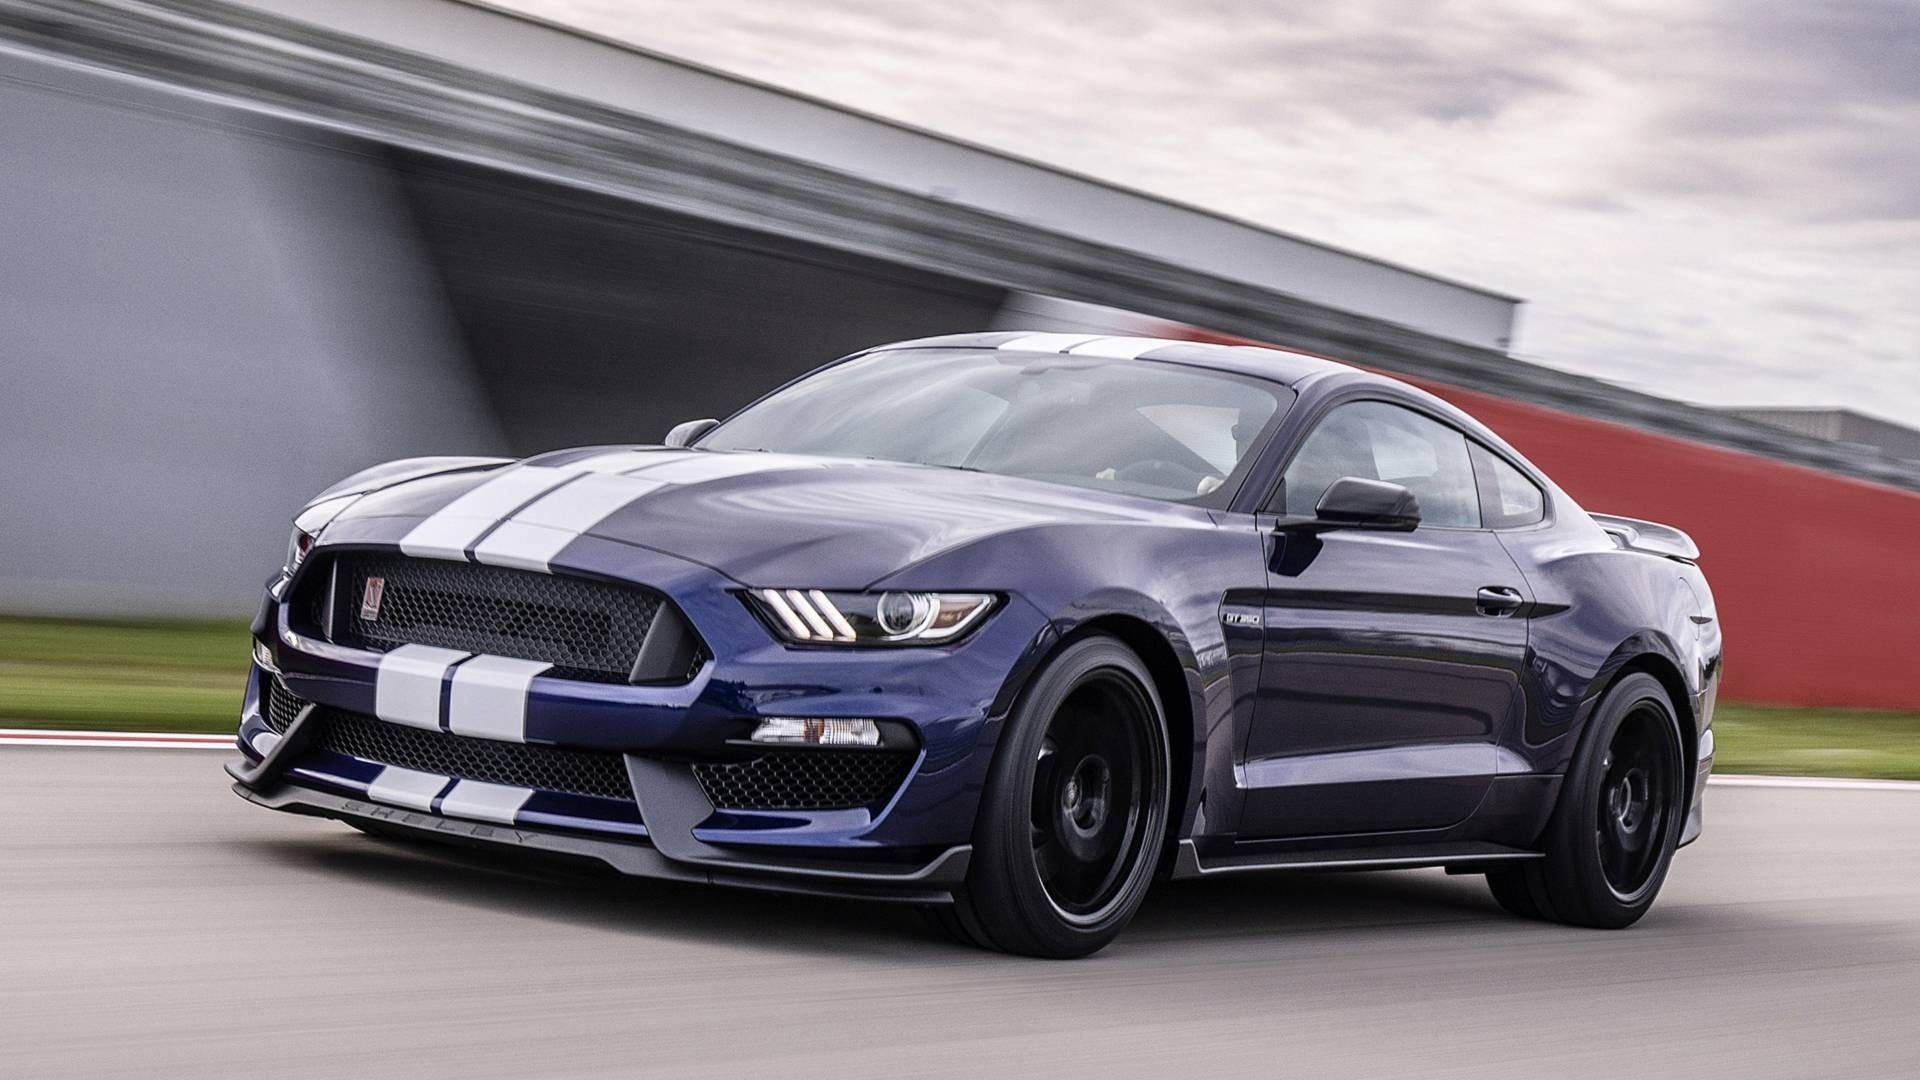 2019 Ford Mustang Shelby Gt350 Interior Exterior And Review Car